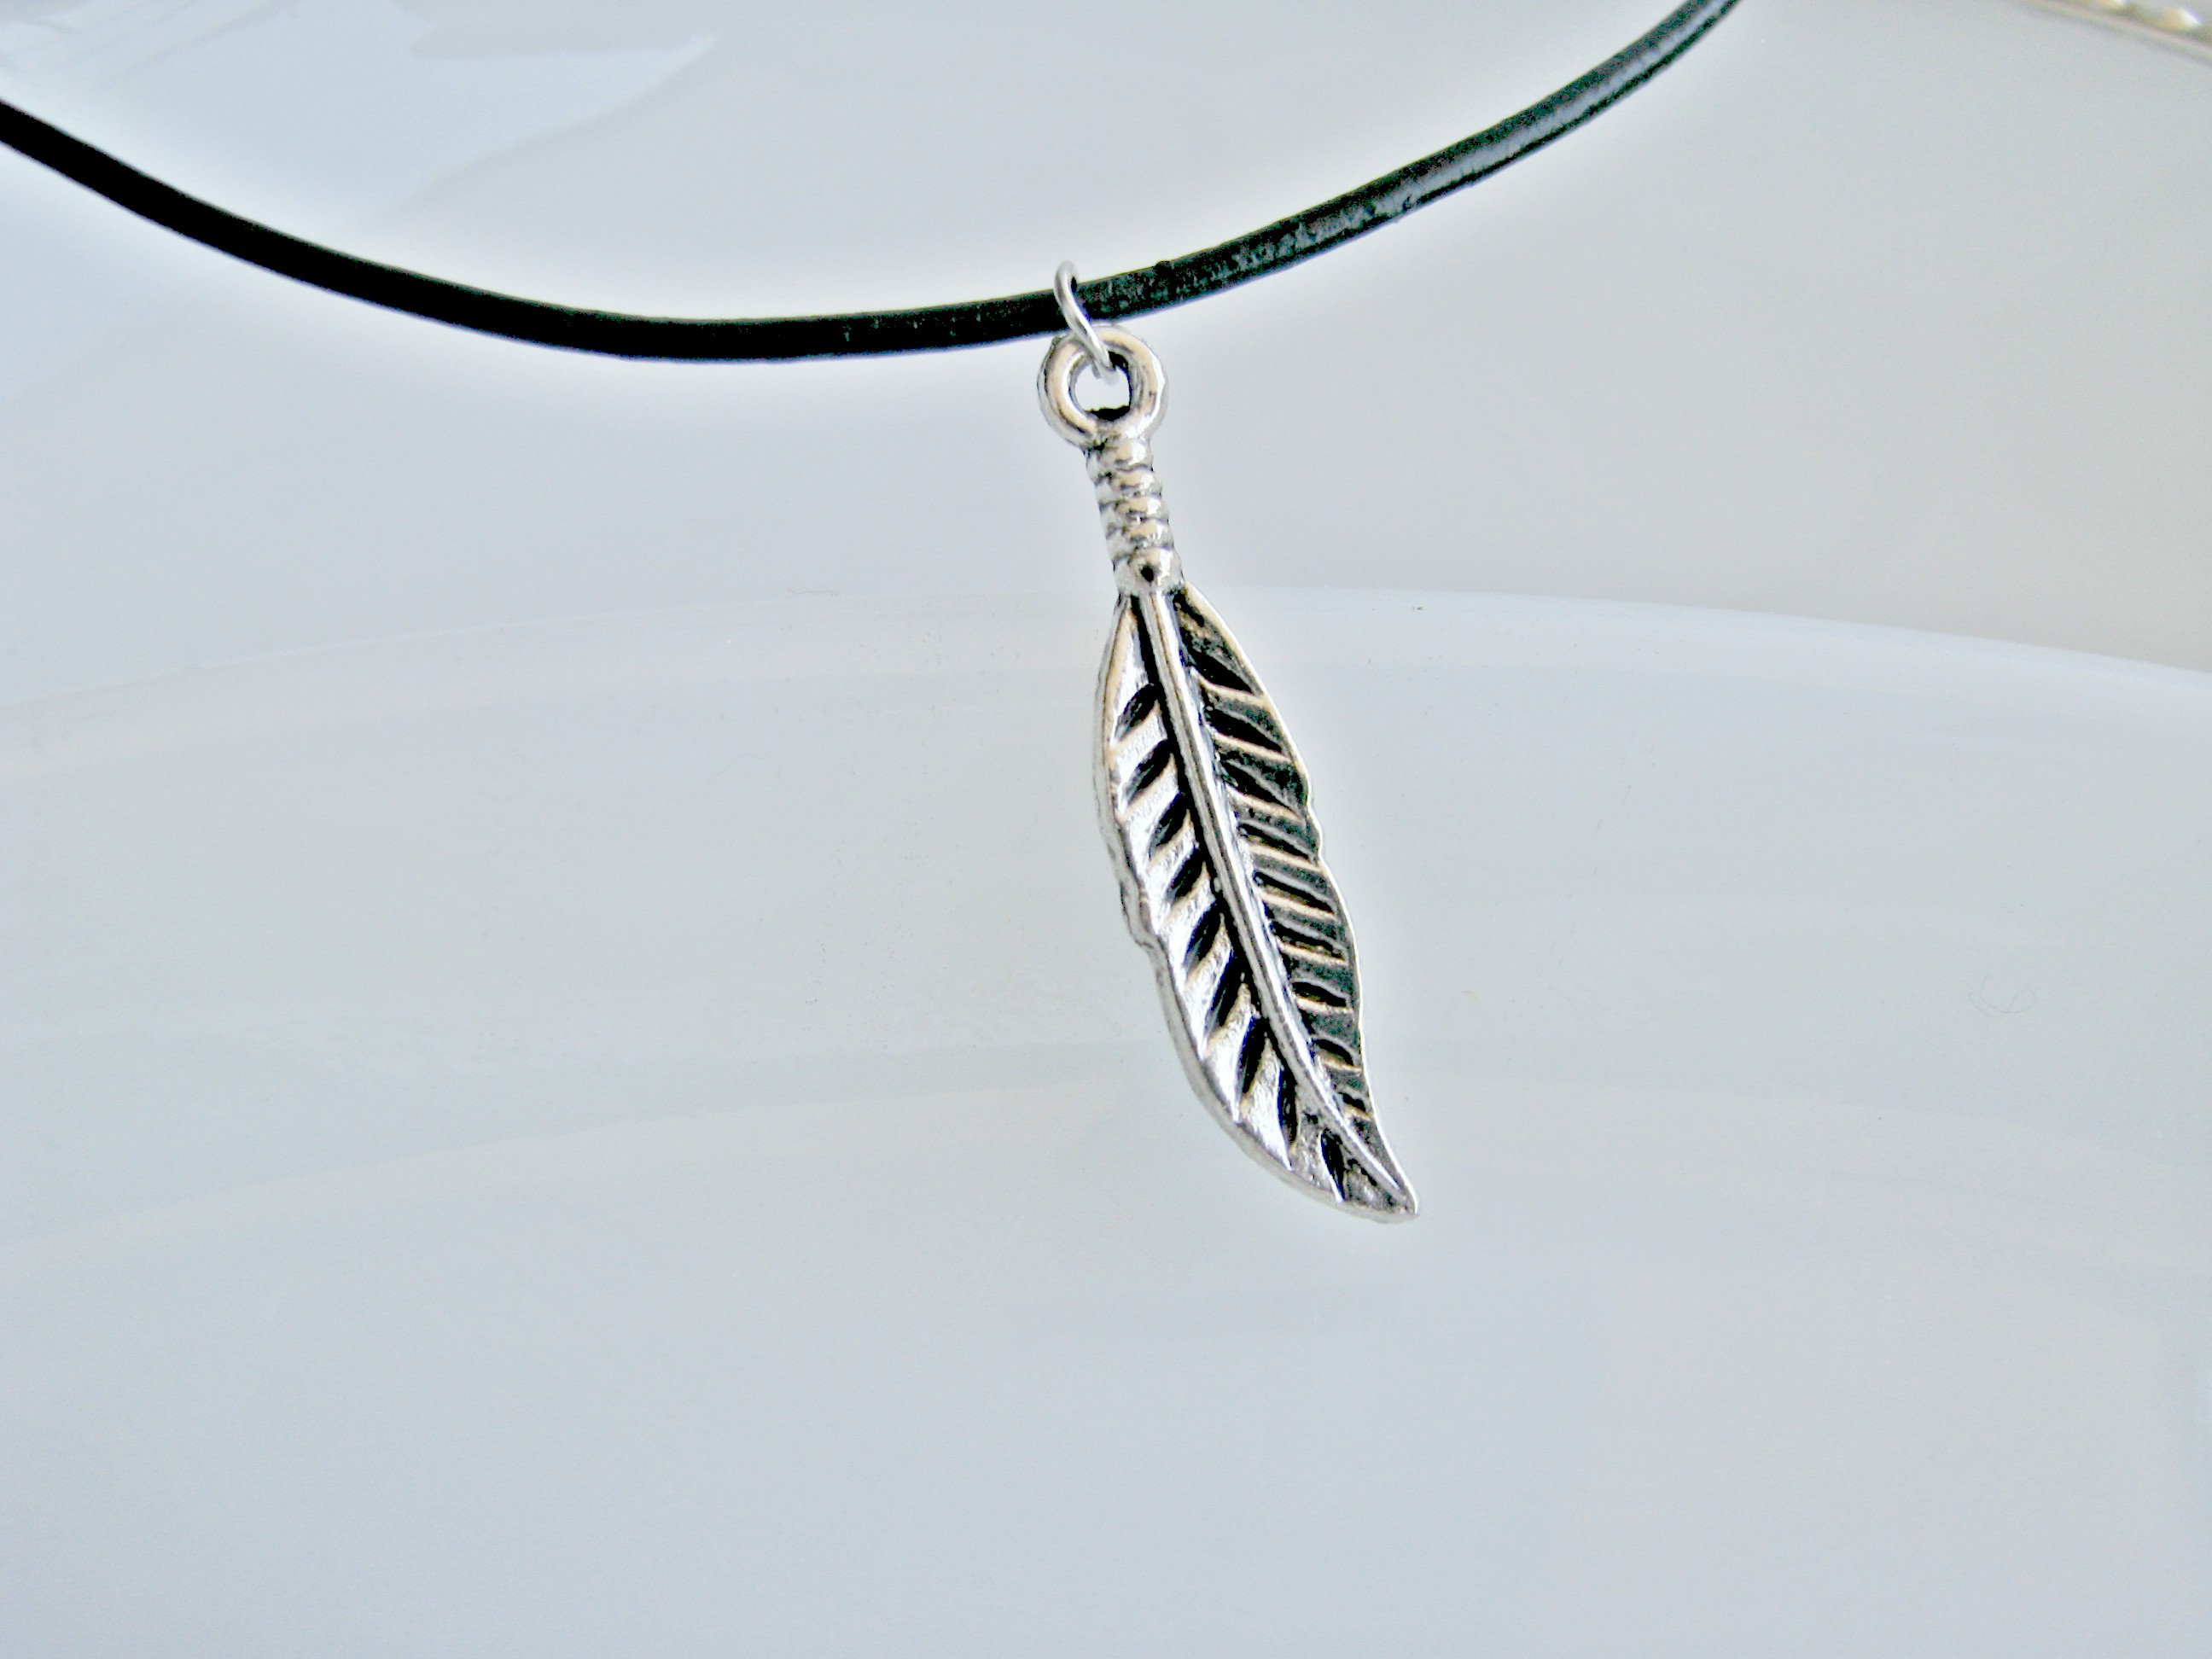 Silver Feather Necklace, Feather Charm, Black Leather Cord And Feather Charm, Adjustable Black Choker, Layered Necklace In Most Recent Black Leather Feather Choker Necklaces (View 12 of 25)